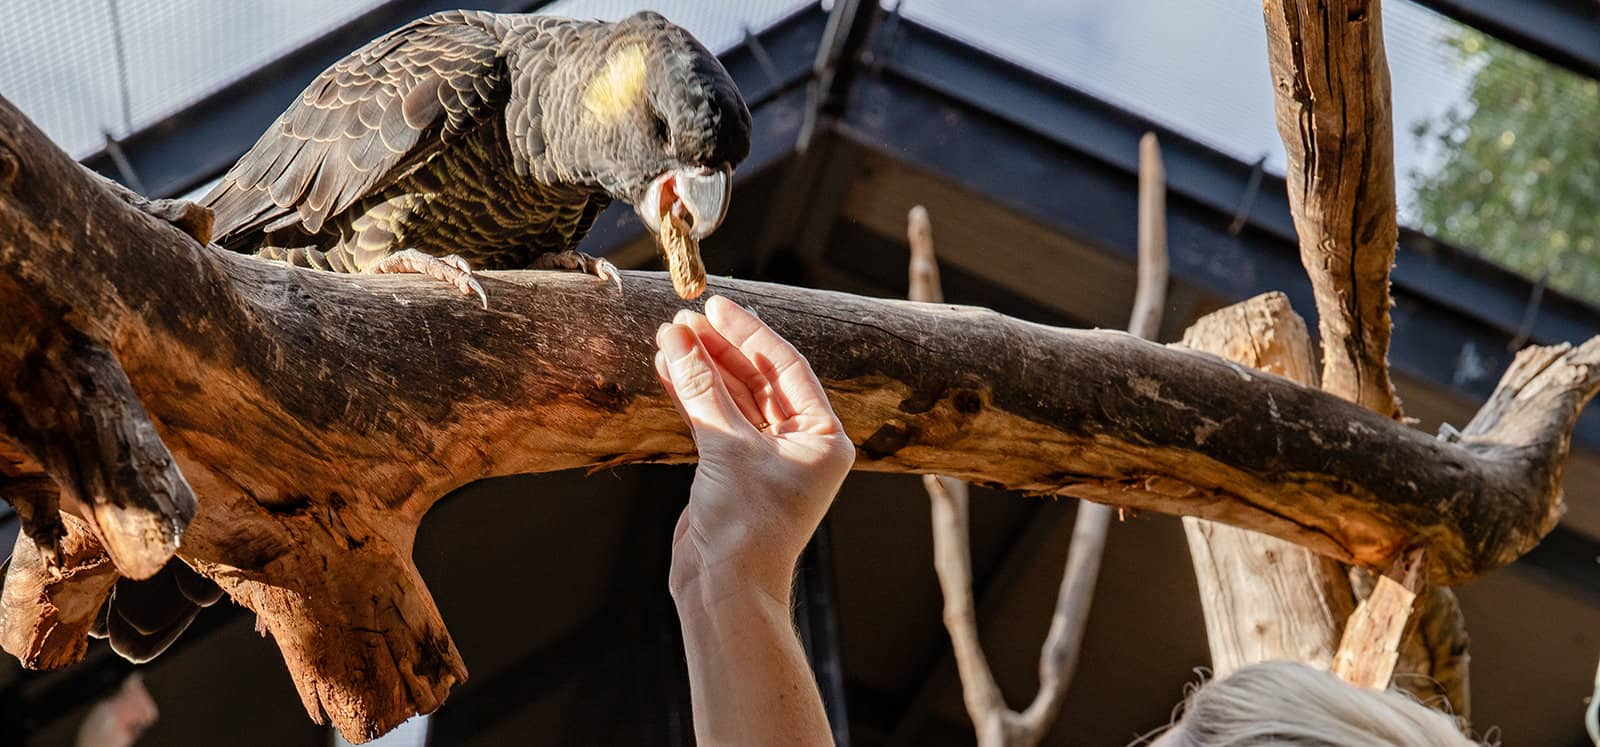 Cockatoo being fed a peanut at Adelaide Zoo